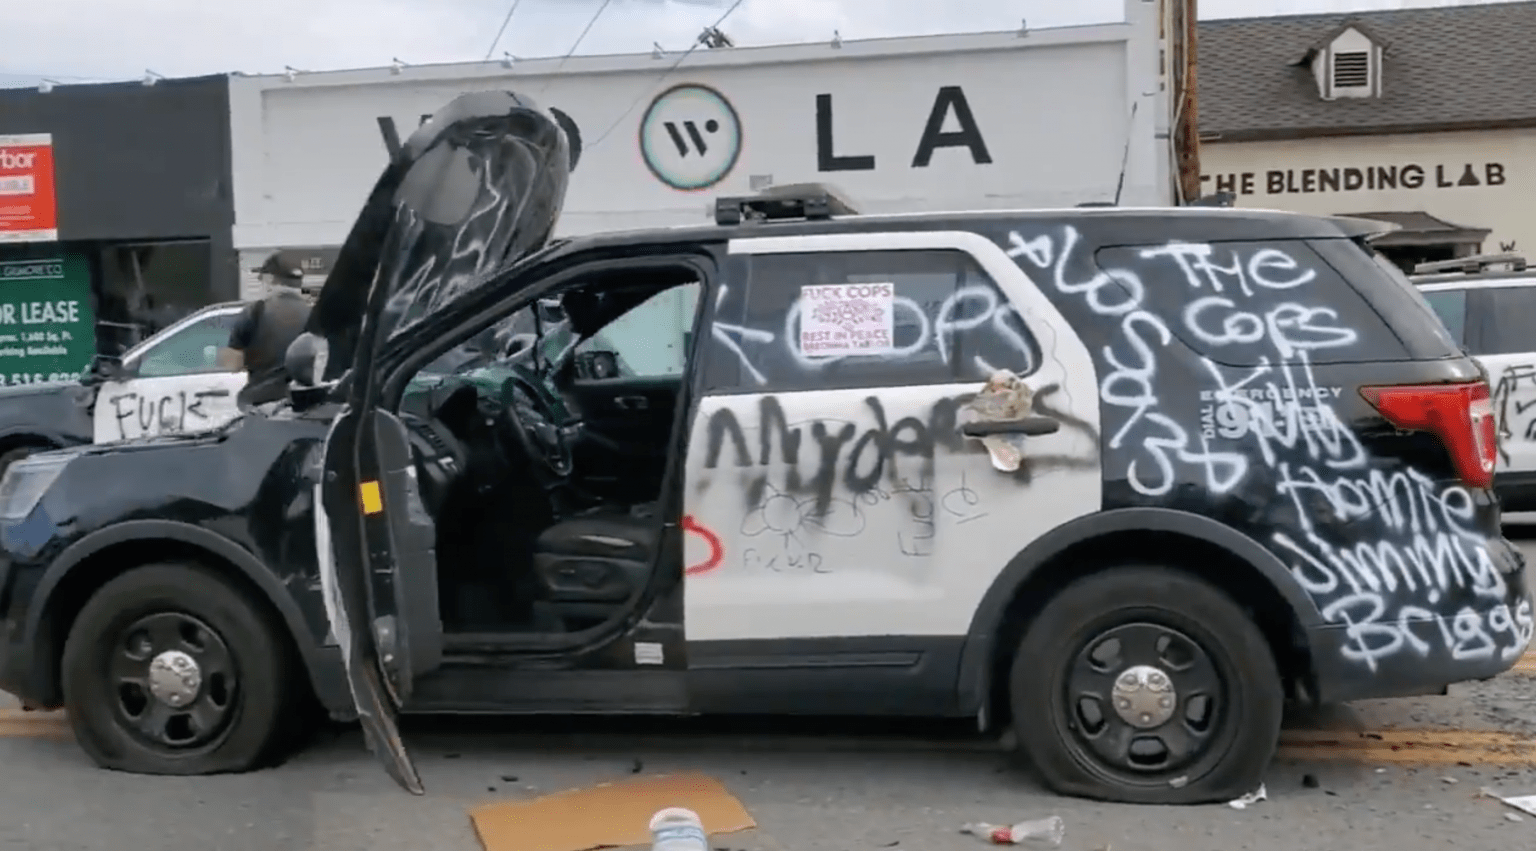 LA: Officers injured, patrol vehicles destroyed, 400 people arrested, National Guard activated